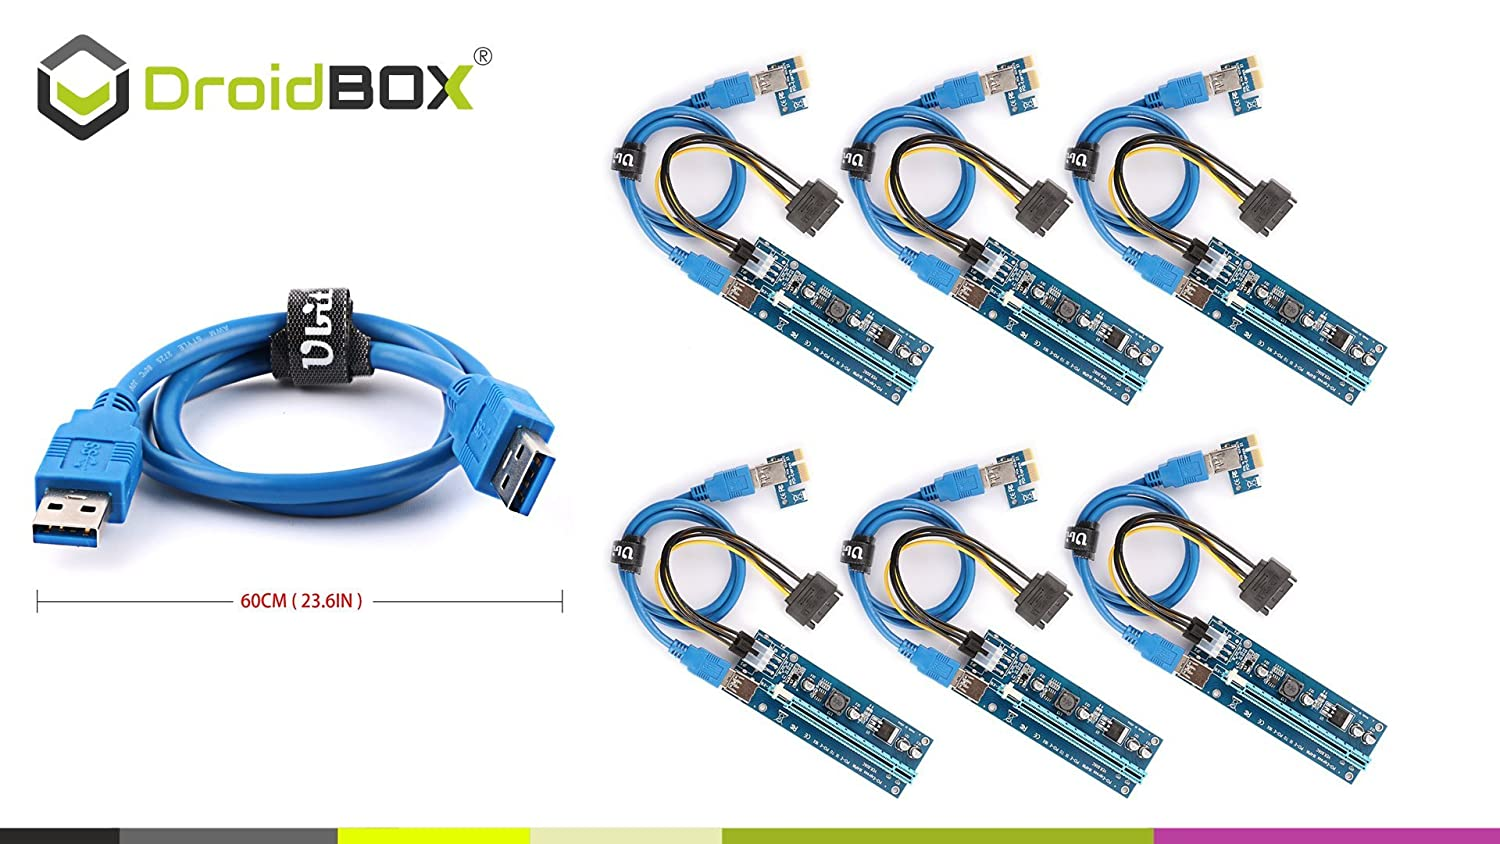 6 Pieces![UPDATED-HQ Components] DroidBOX PCI-E V006C Extender Cable USB 3.0 Converter 4PIN 6PIN SATA PCI Express PCI-E 1X to 16X Riser Card 60CM For Bitcoin BTC Etherium Mining (6 Pieces)